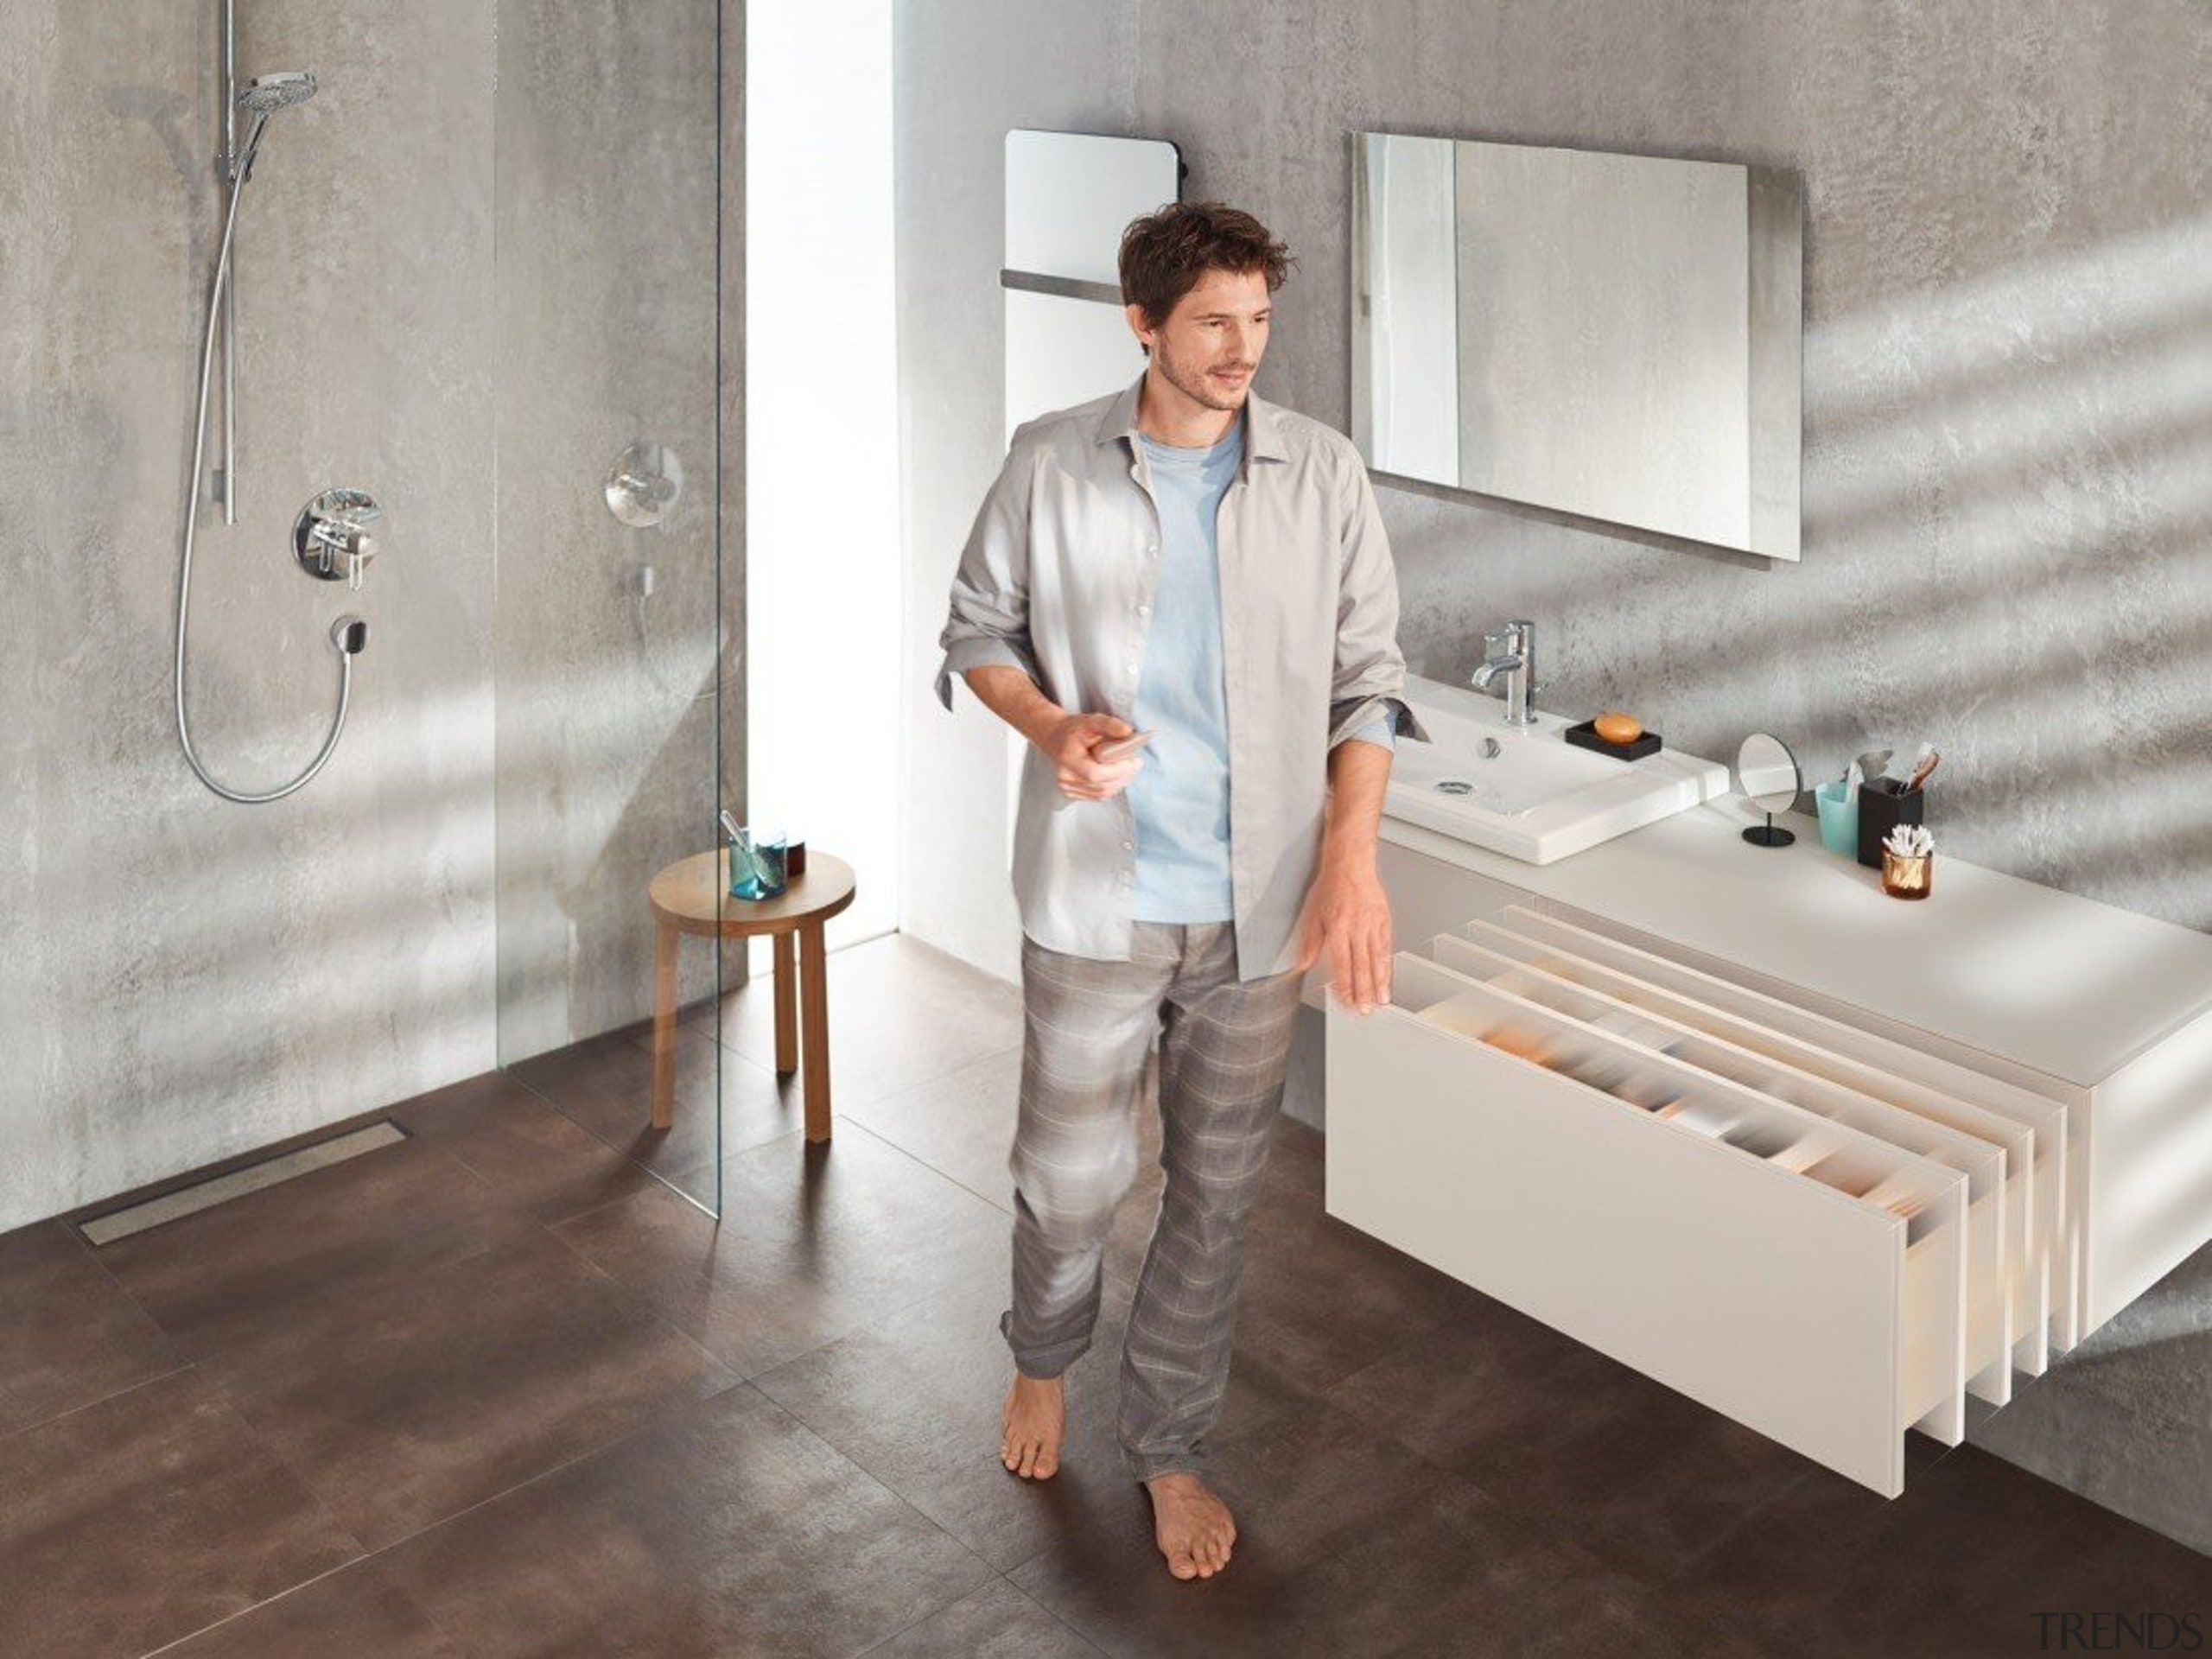 TIP-ON BLUMOTION for MOVENTO combines the advantages of bathroom, floor, flooring, furniture, interior design, plumbing fixture, room, table, tile, gray